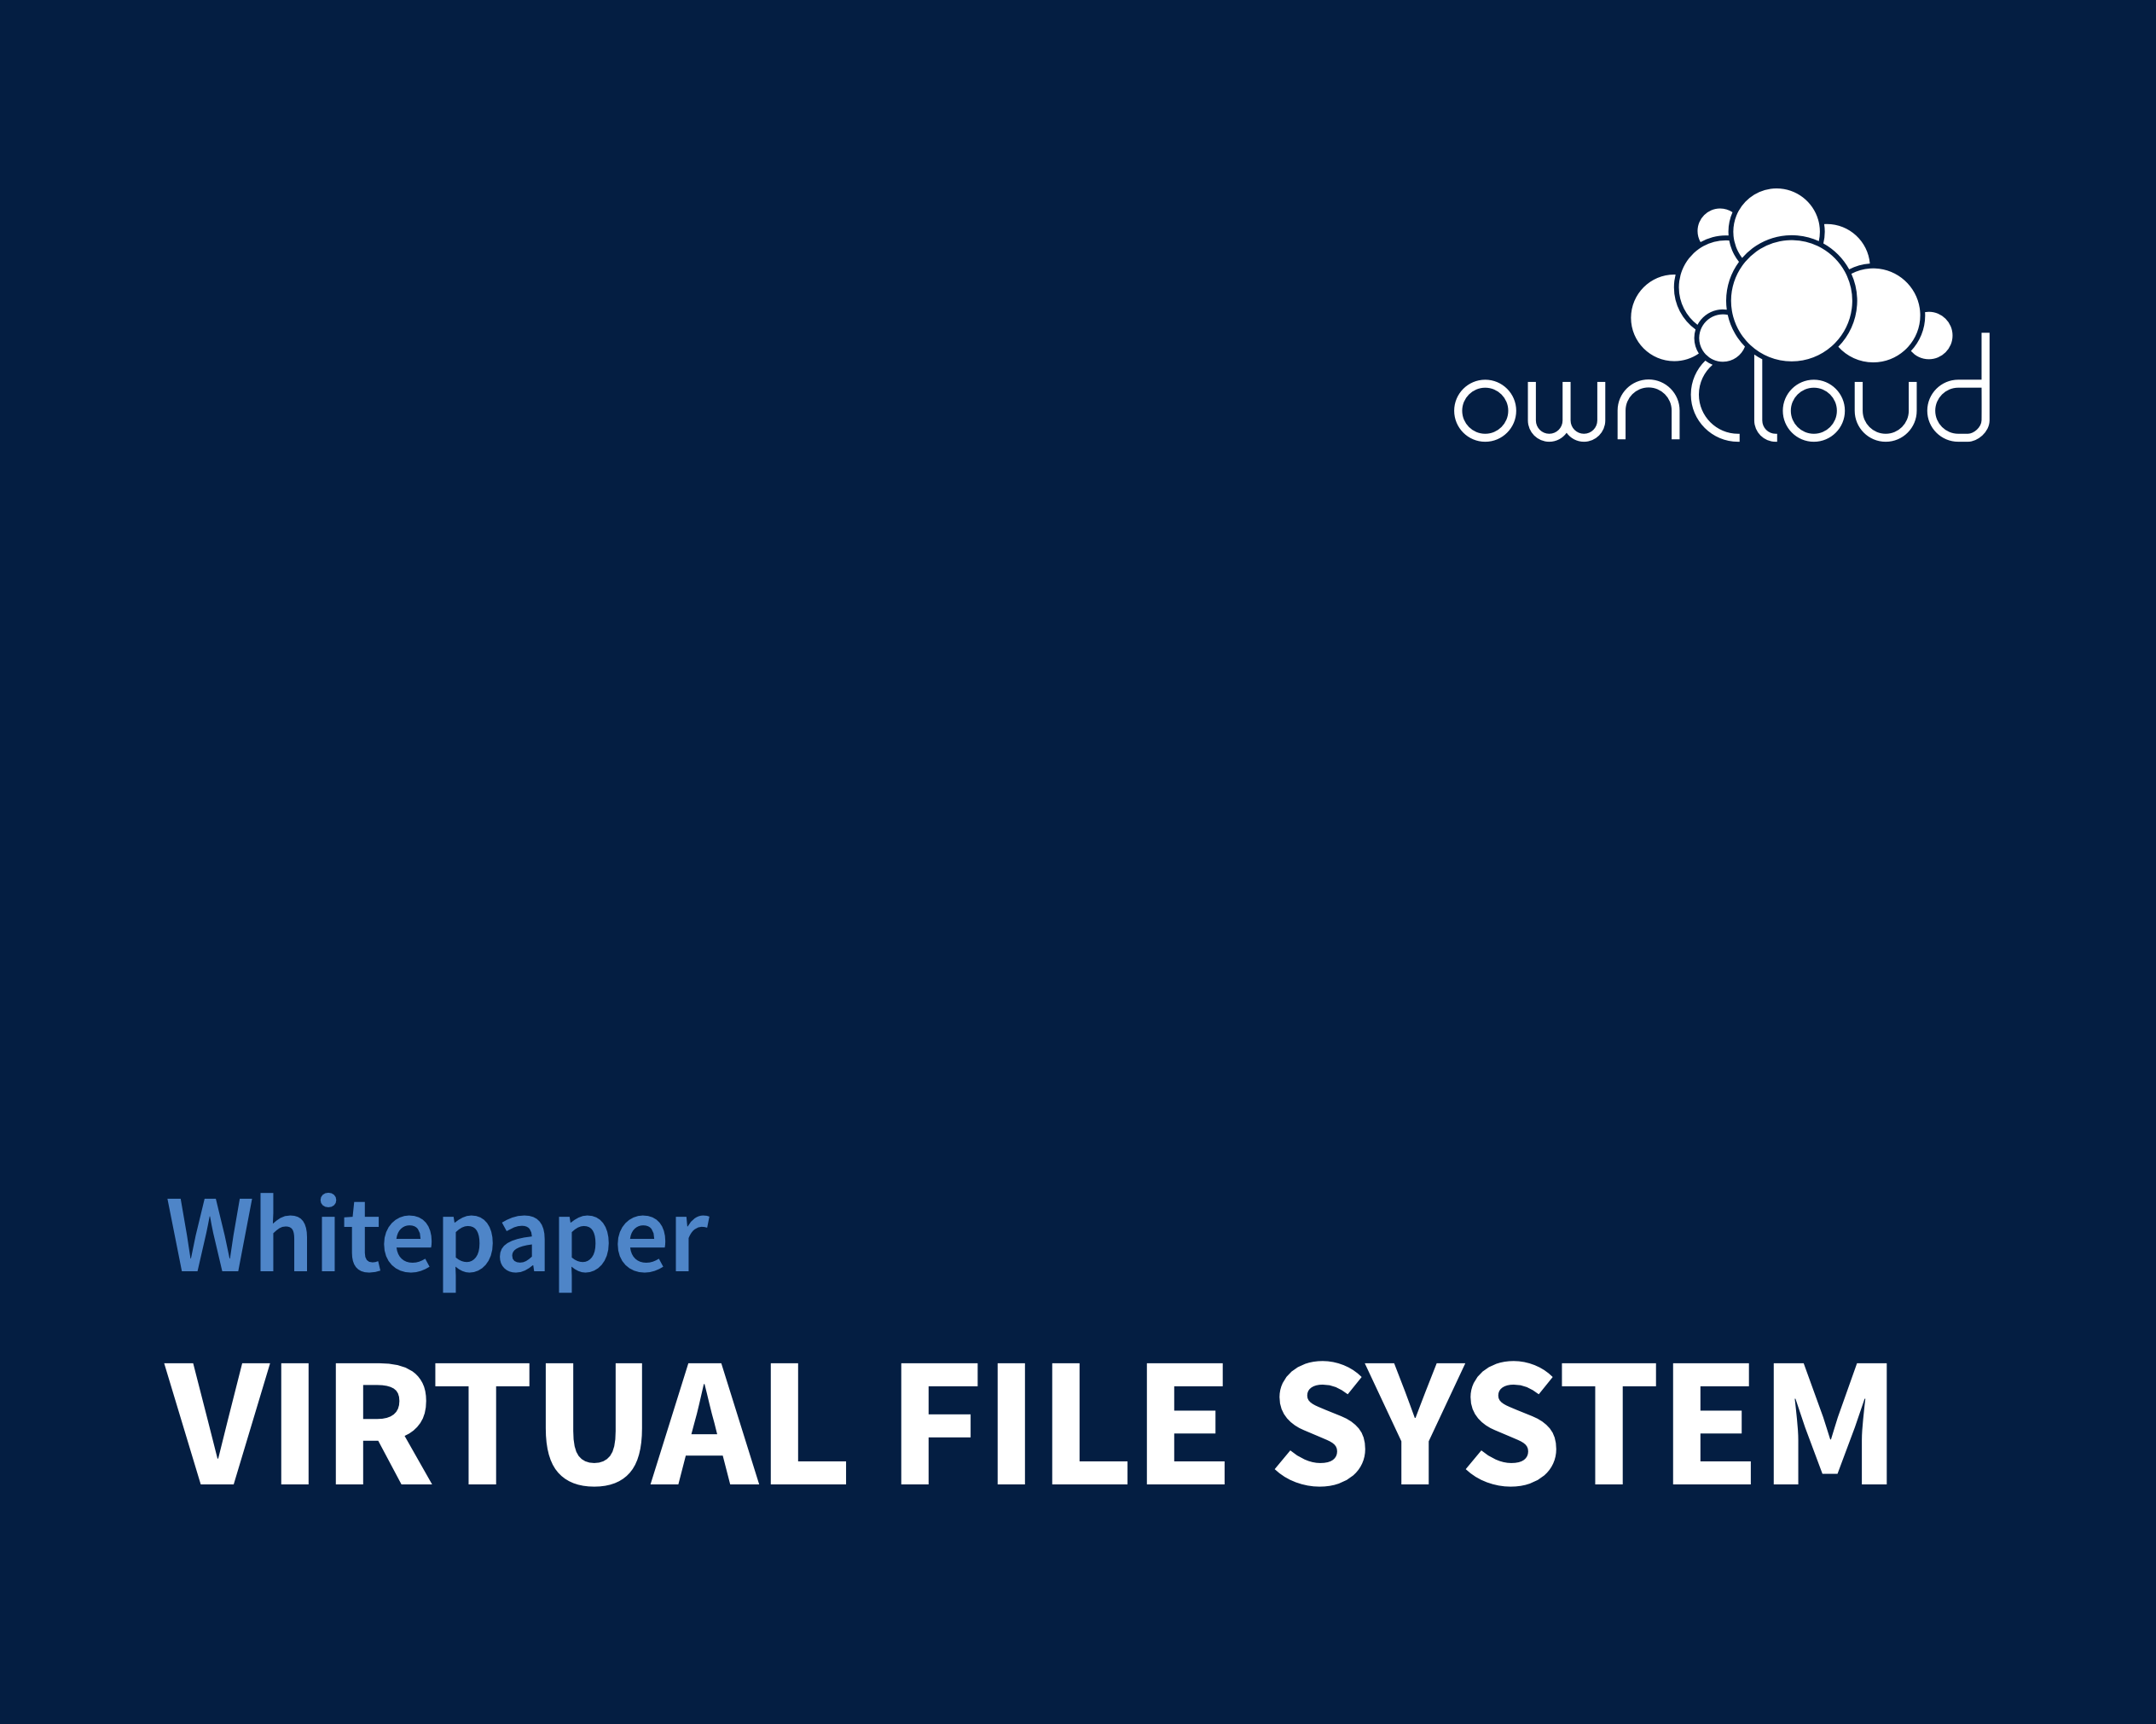 """Dark blue background with """"Whitepaper VIRTUAL FILE SYSTEM"""" in the lower left corner and ownCloud logo in the upper right corner"""